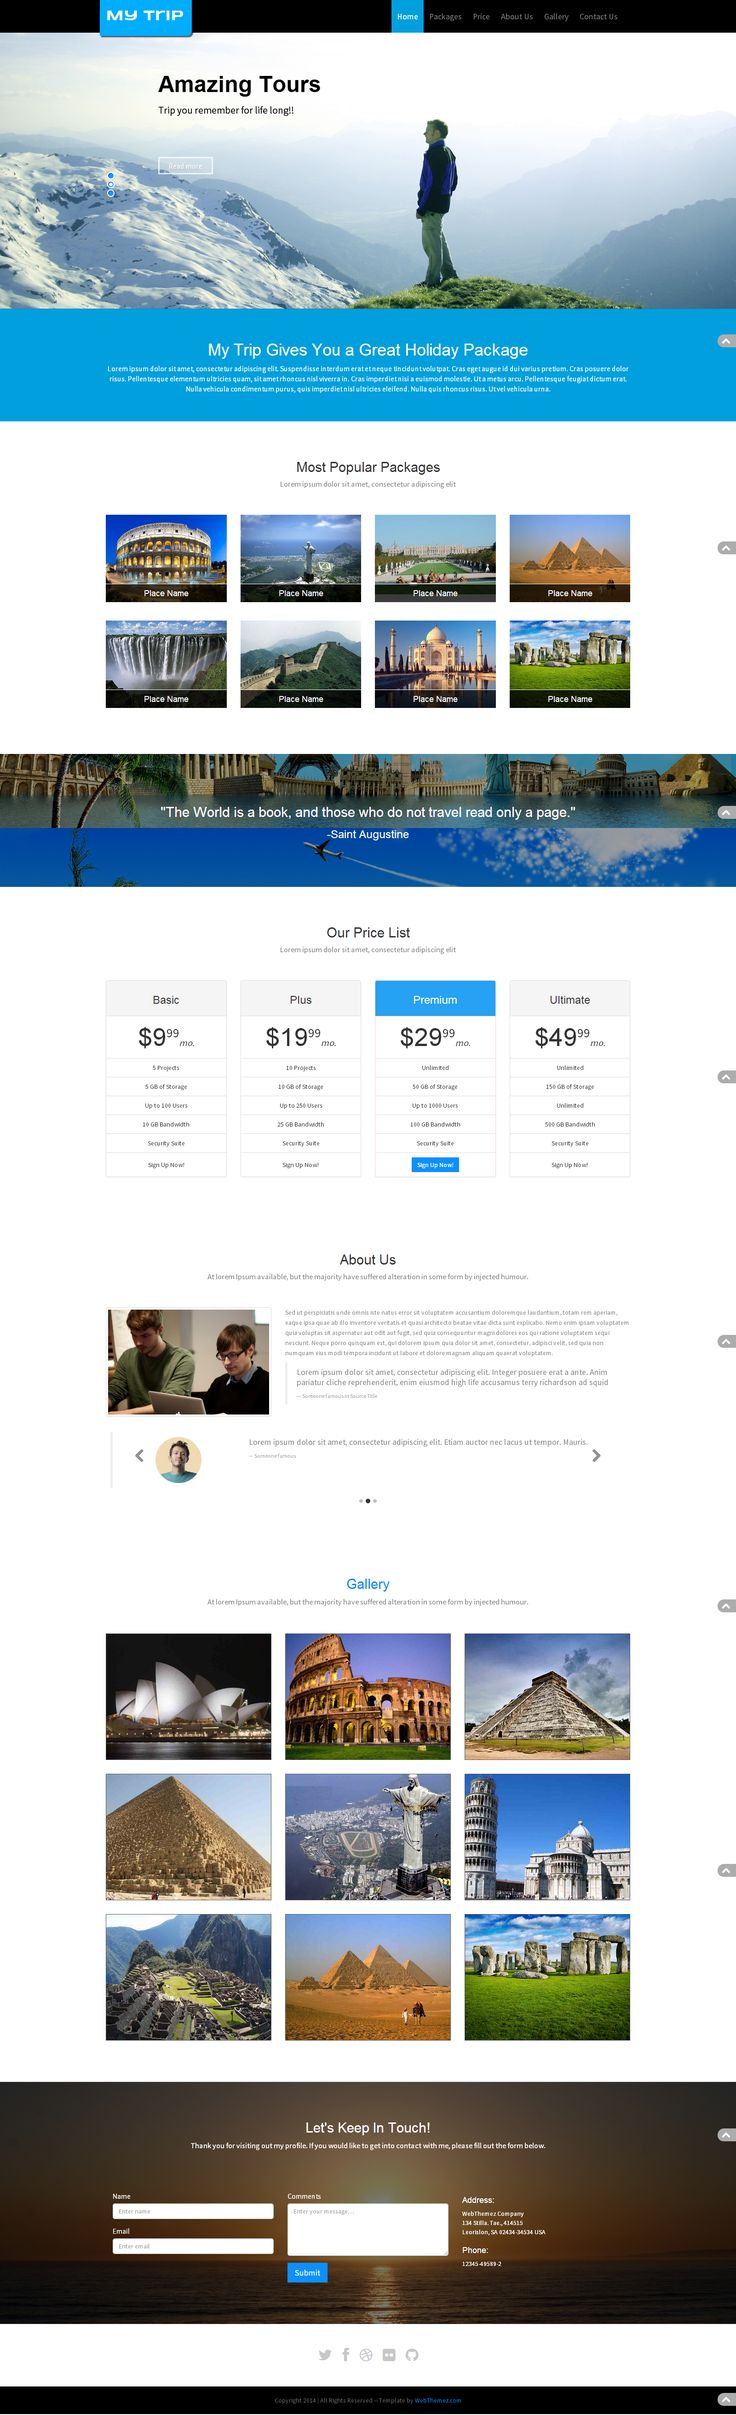 Travel company template built with #bootstrap framework v.3.1.1. html5 and css3 based template its contain css3 animation. Its easy to customize and documentation for template included in it. Minimal, ,modern, responsive, multipurpose #HTML5/CSS3 #template. #website #travellagency #travell